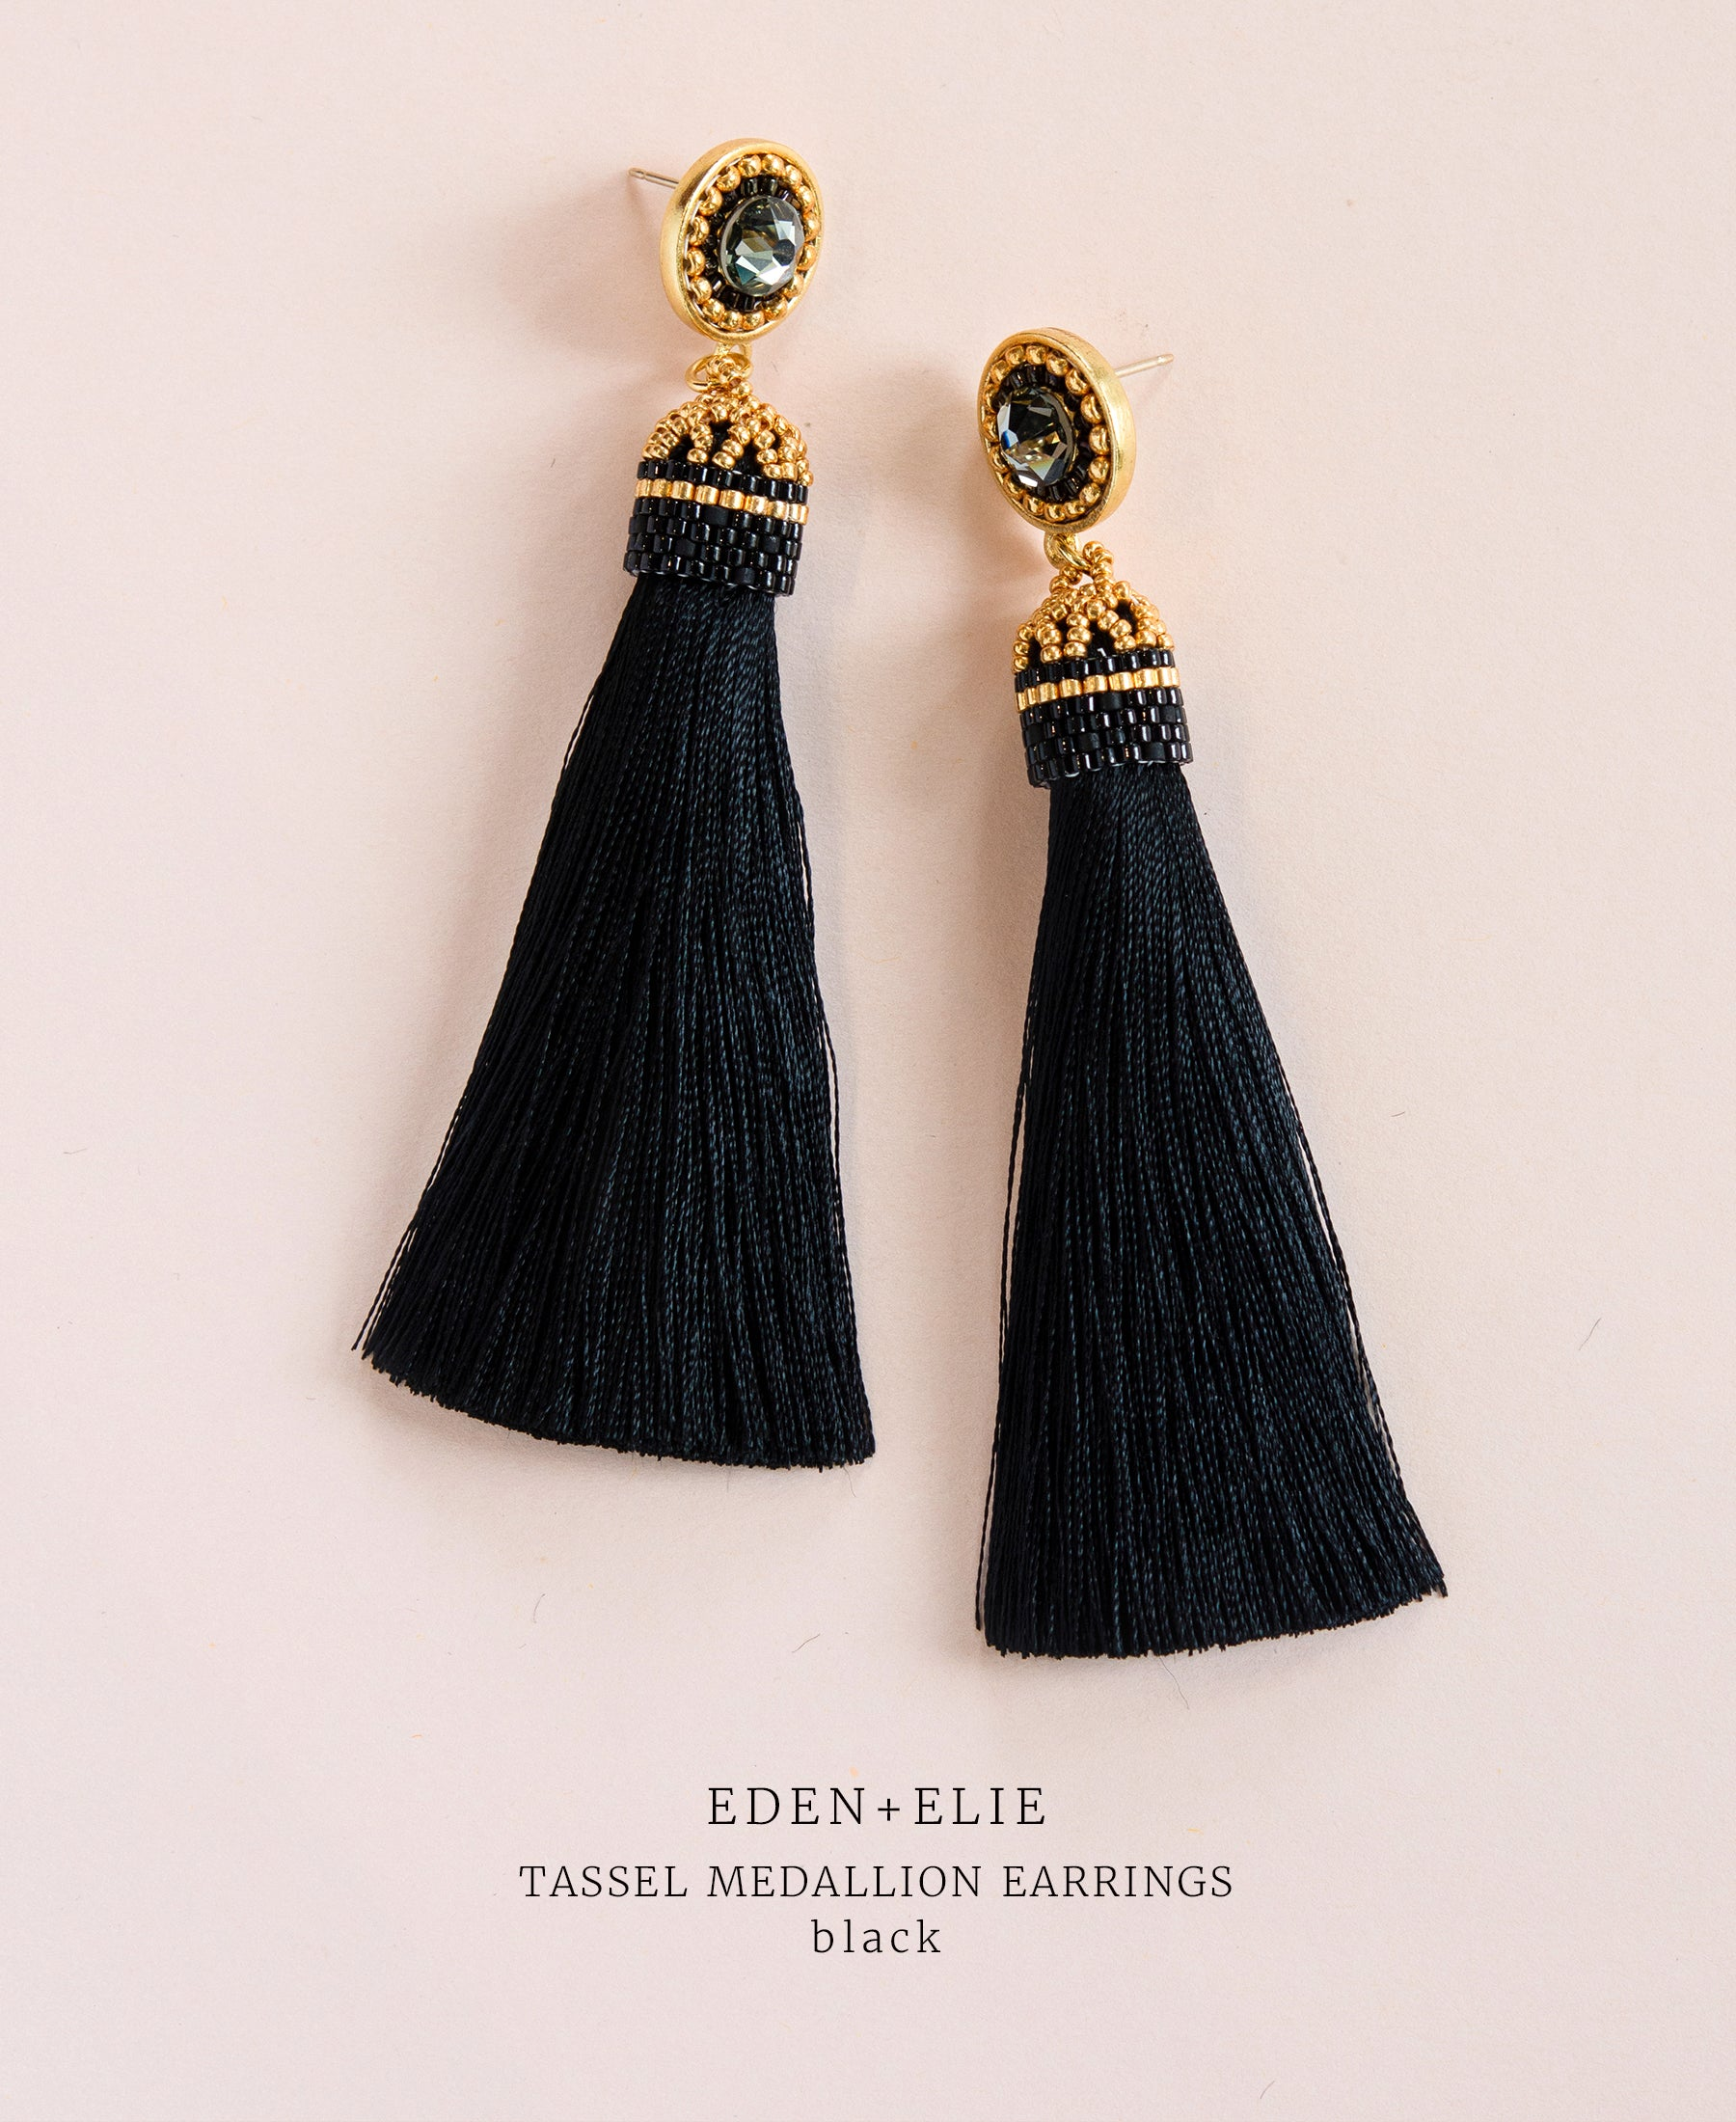 EDEN + ELIE silk tassel statement earrings - black